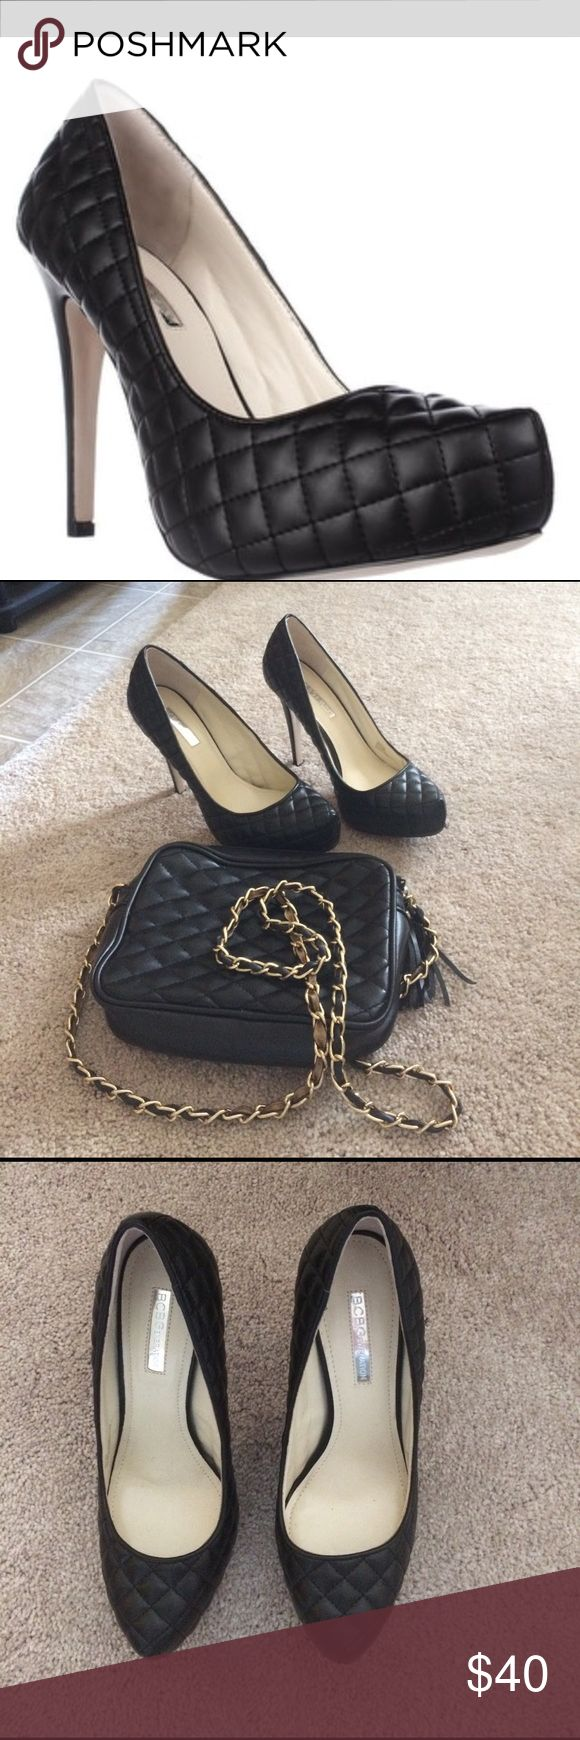 Shoes NWOT BCBG Generation Pixie Platform Quilted Faux Leather shoes.  Purse added as a bonus for free. 4 3/4 inches heel and 1 inch platform.  Size 8 but fits more like 7 1/2 BCBGeneration Shoes Heels